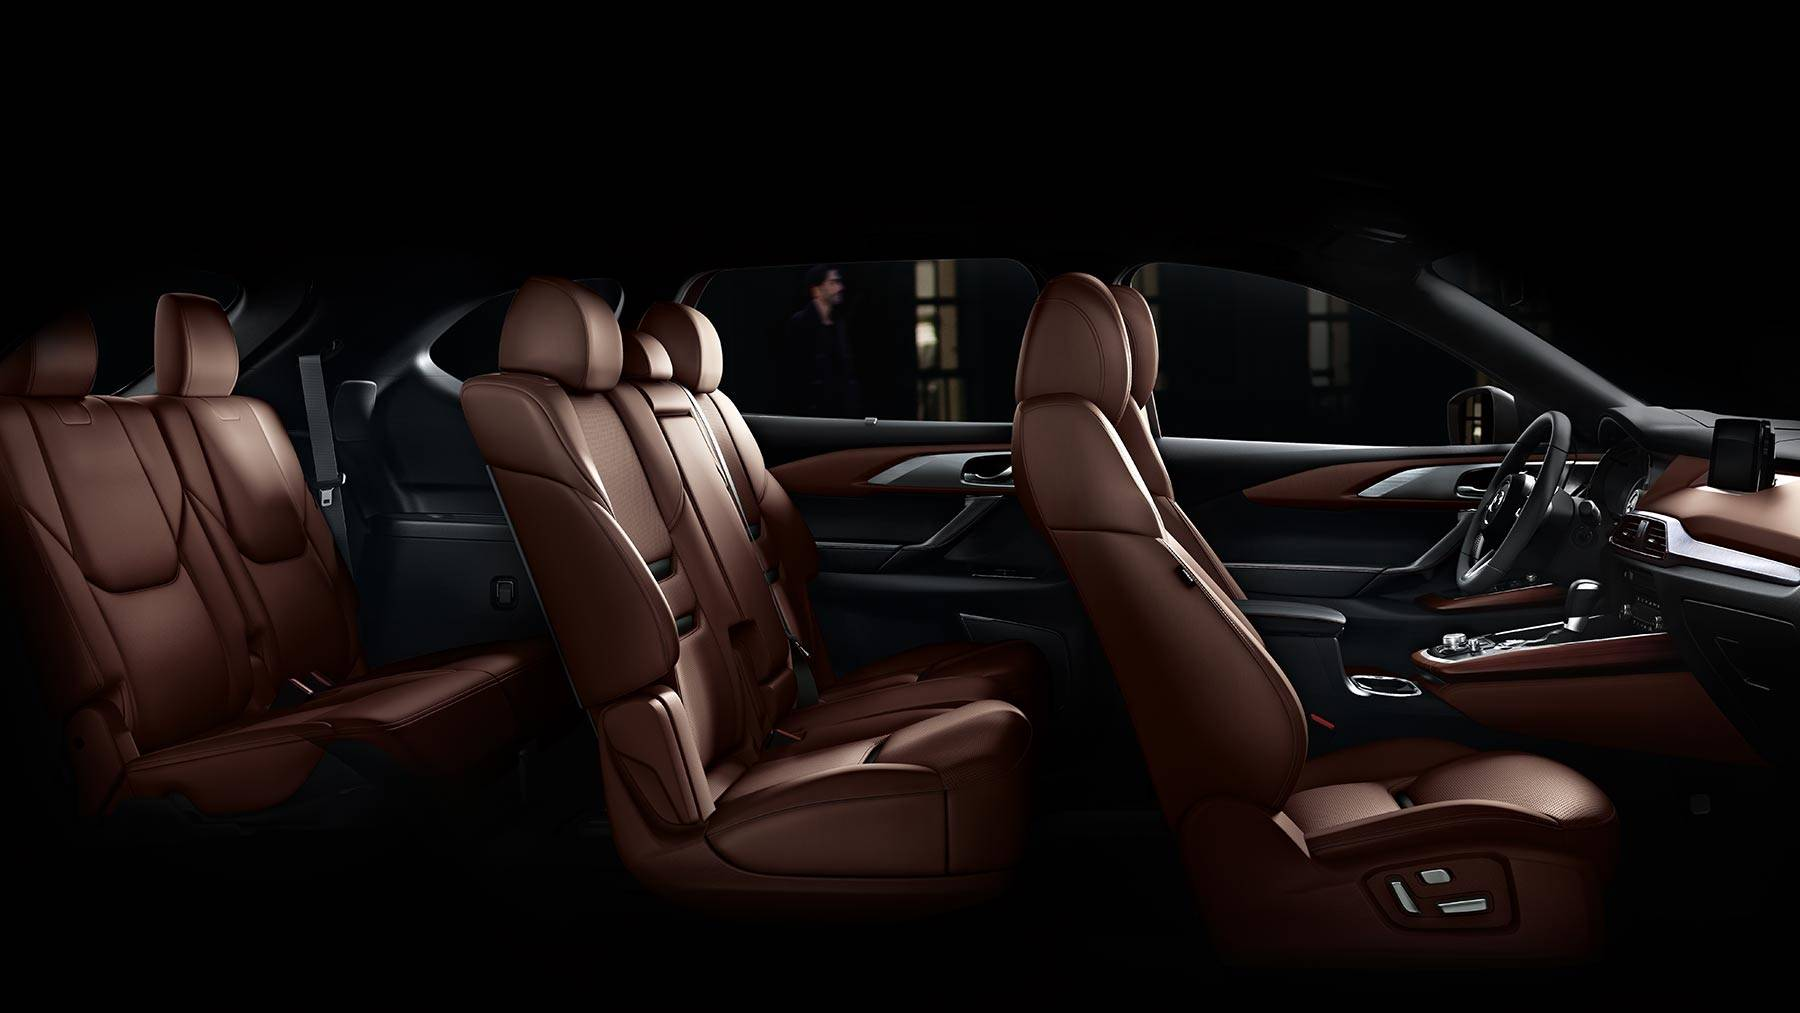 Luxurious Three-Row Seating in the Mazda CX-9